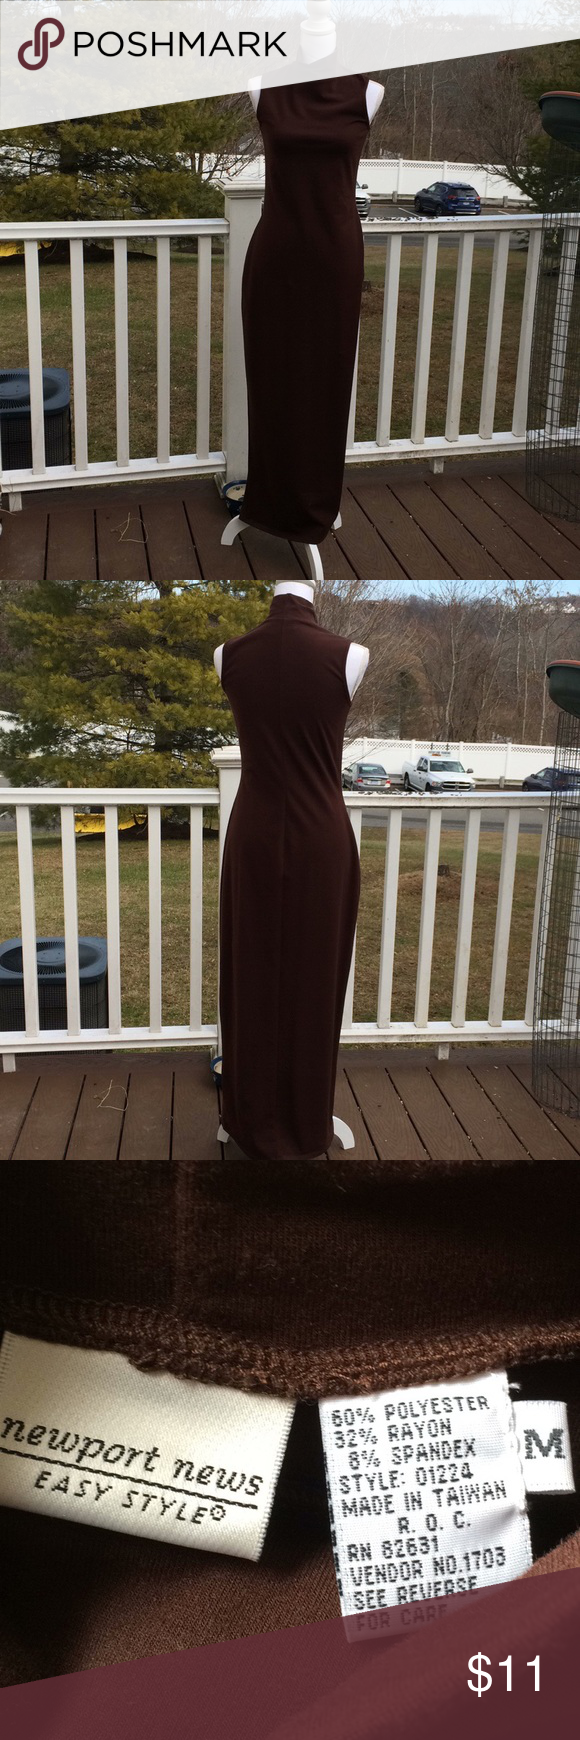 Vintage Newport News Maxi Dress From Newport News 2001 Double Expresso Color Mock Turtleneck Maxi Dress Doesn T Appear To Have Ev In 2020 Newport News Dresses Newport